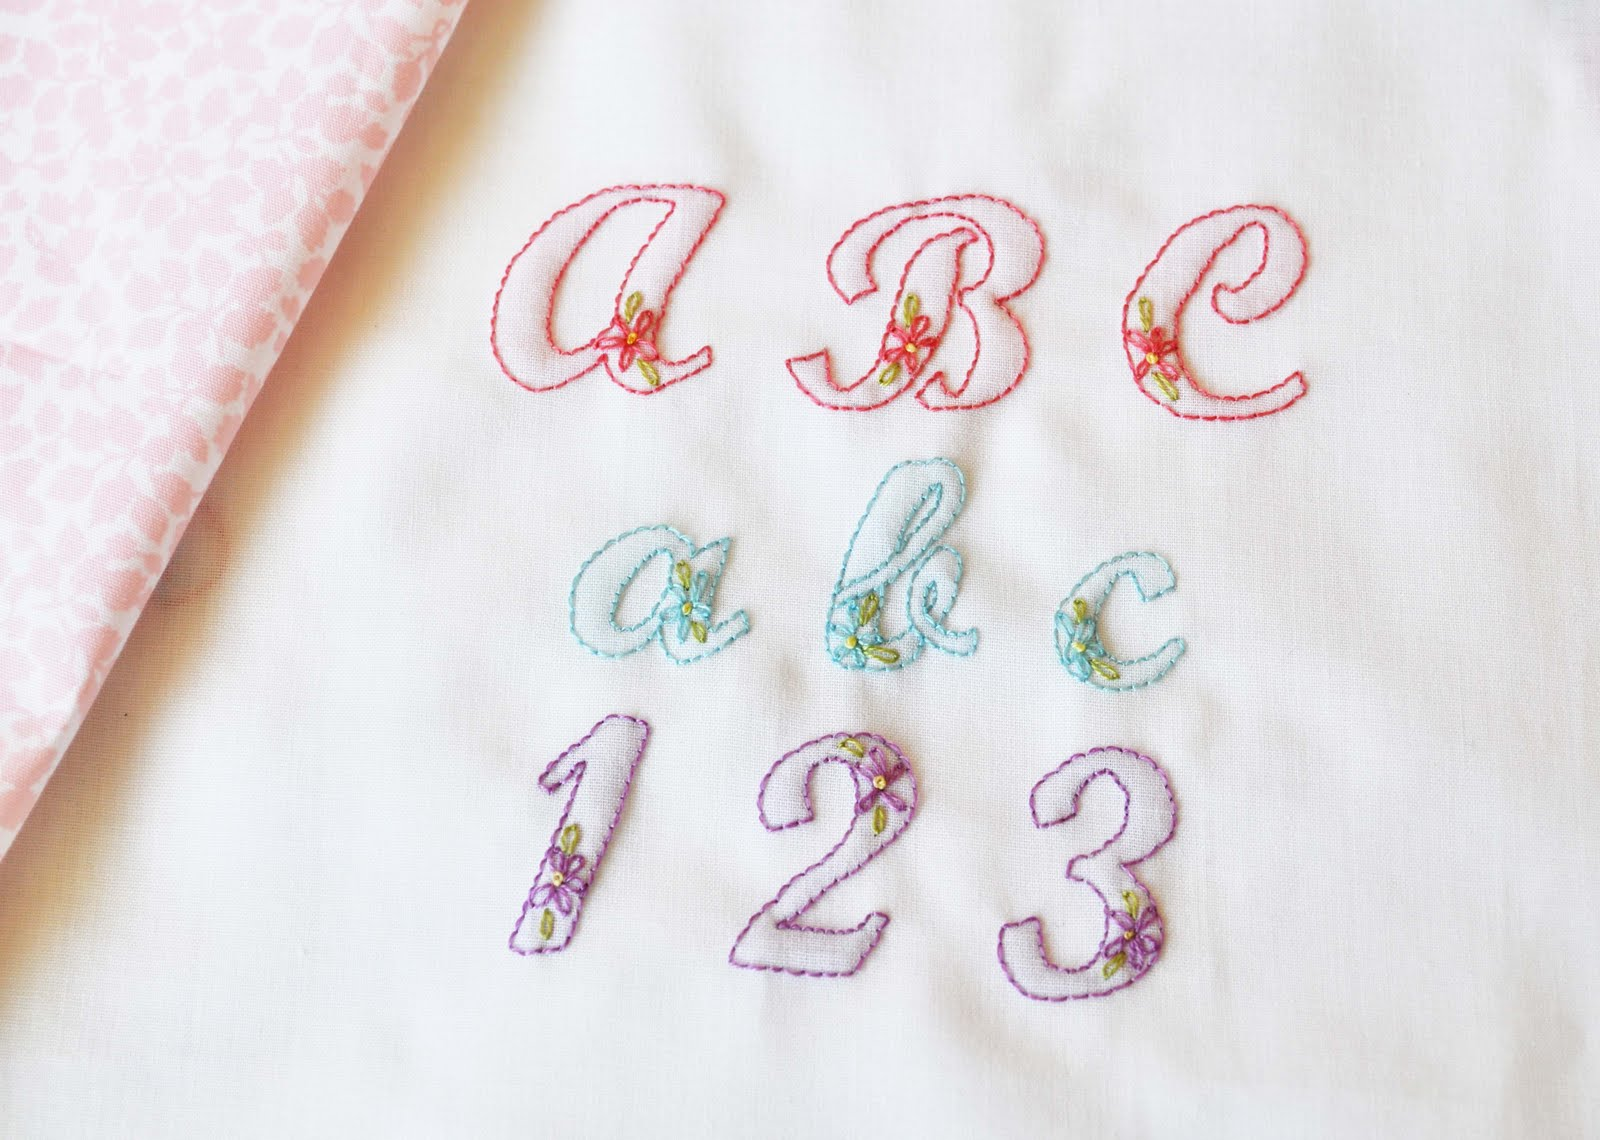 Hand embroider alphabet free embroidery patterns